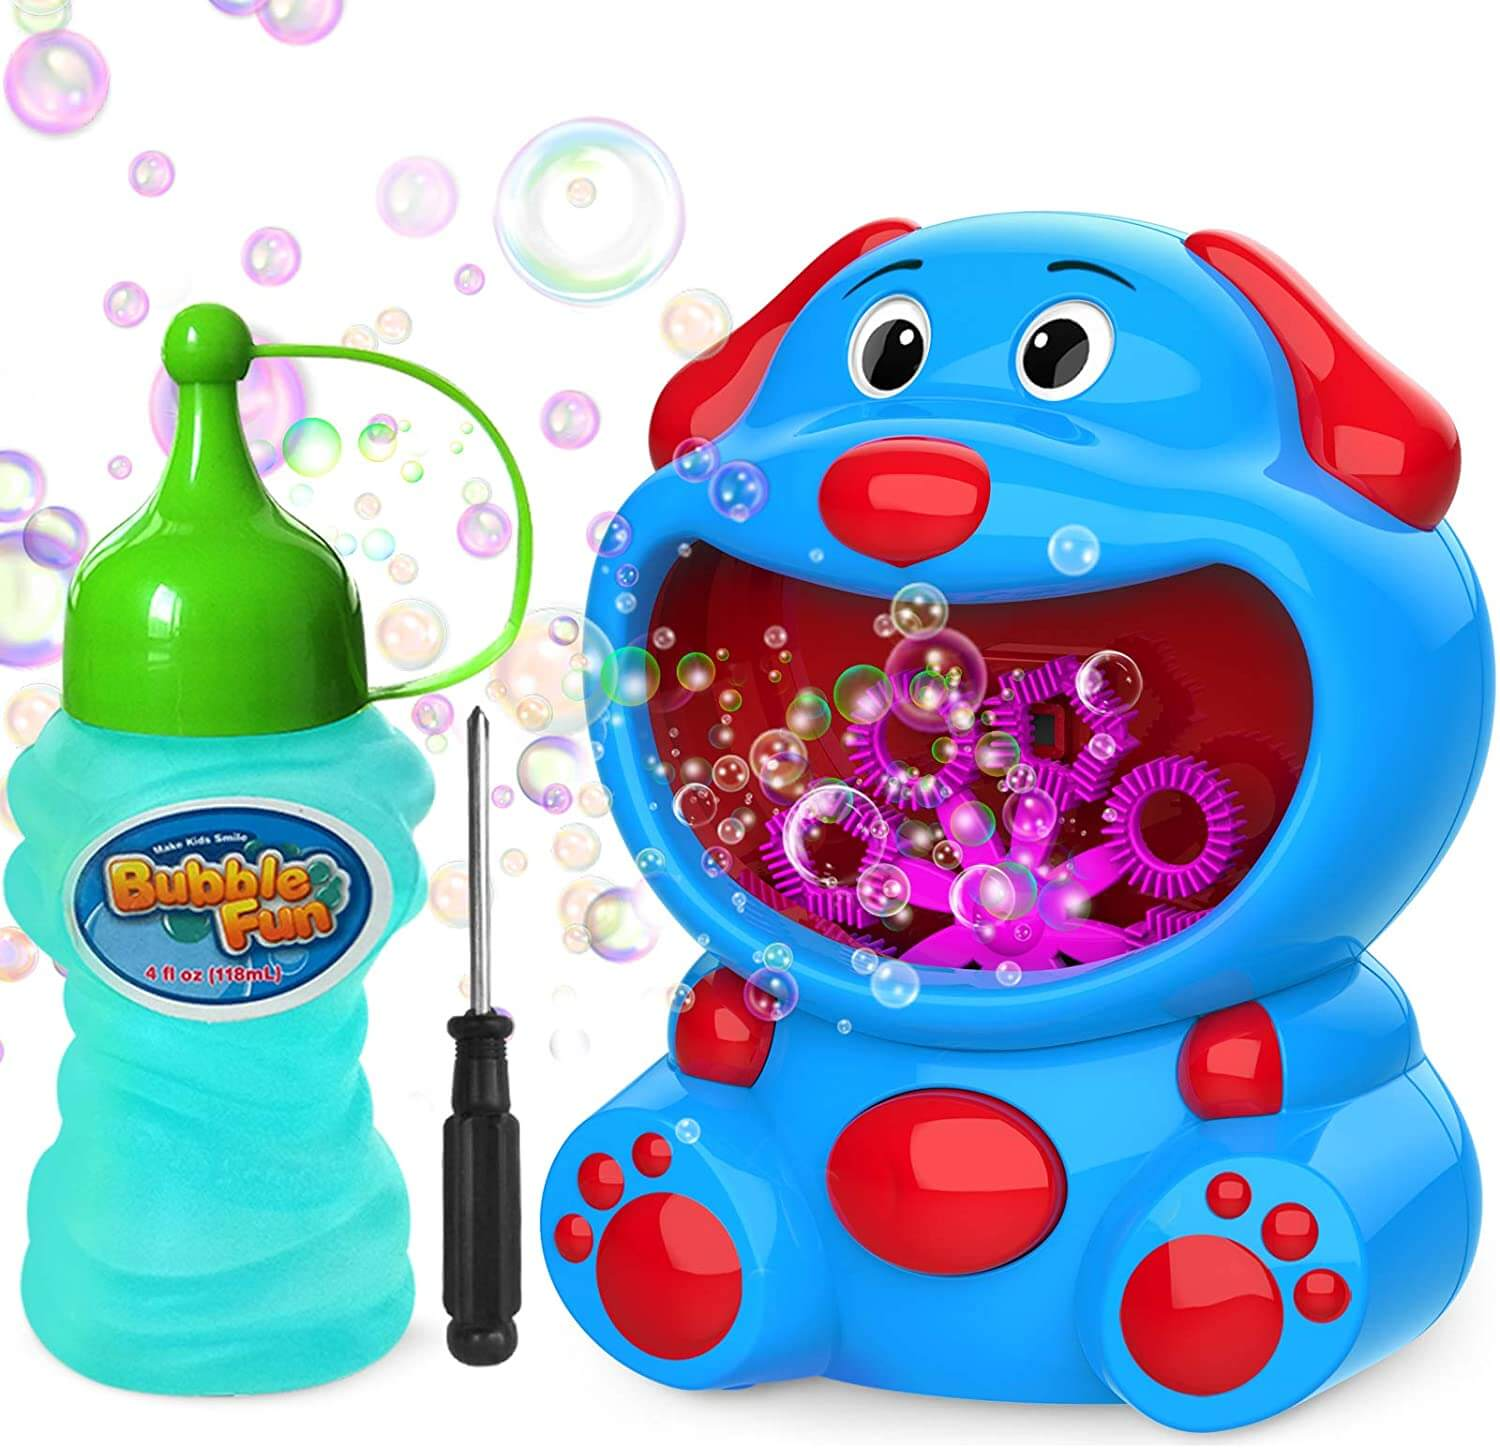 WisToyz Super Dog Bubble Blower,Auto Bubble Machine, 500+ Bubbles Per Minute